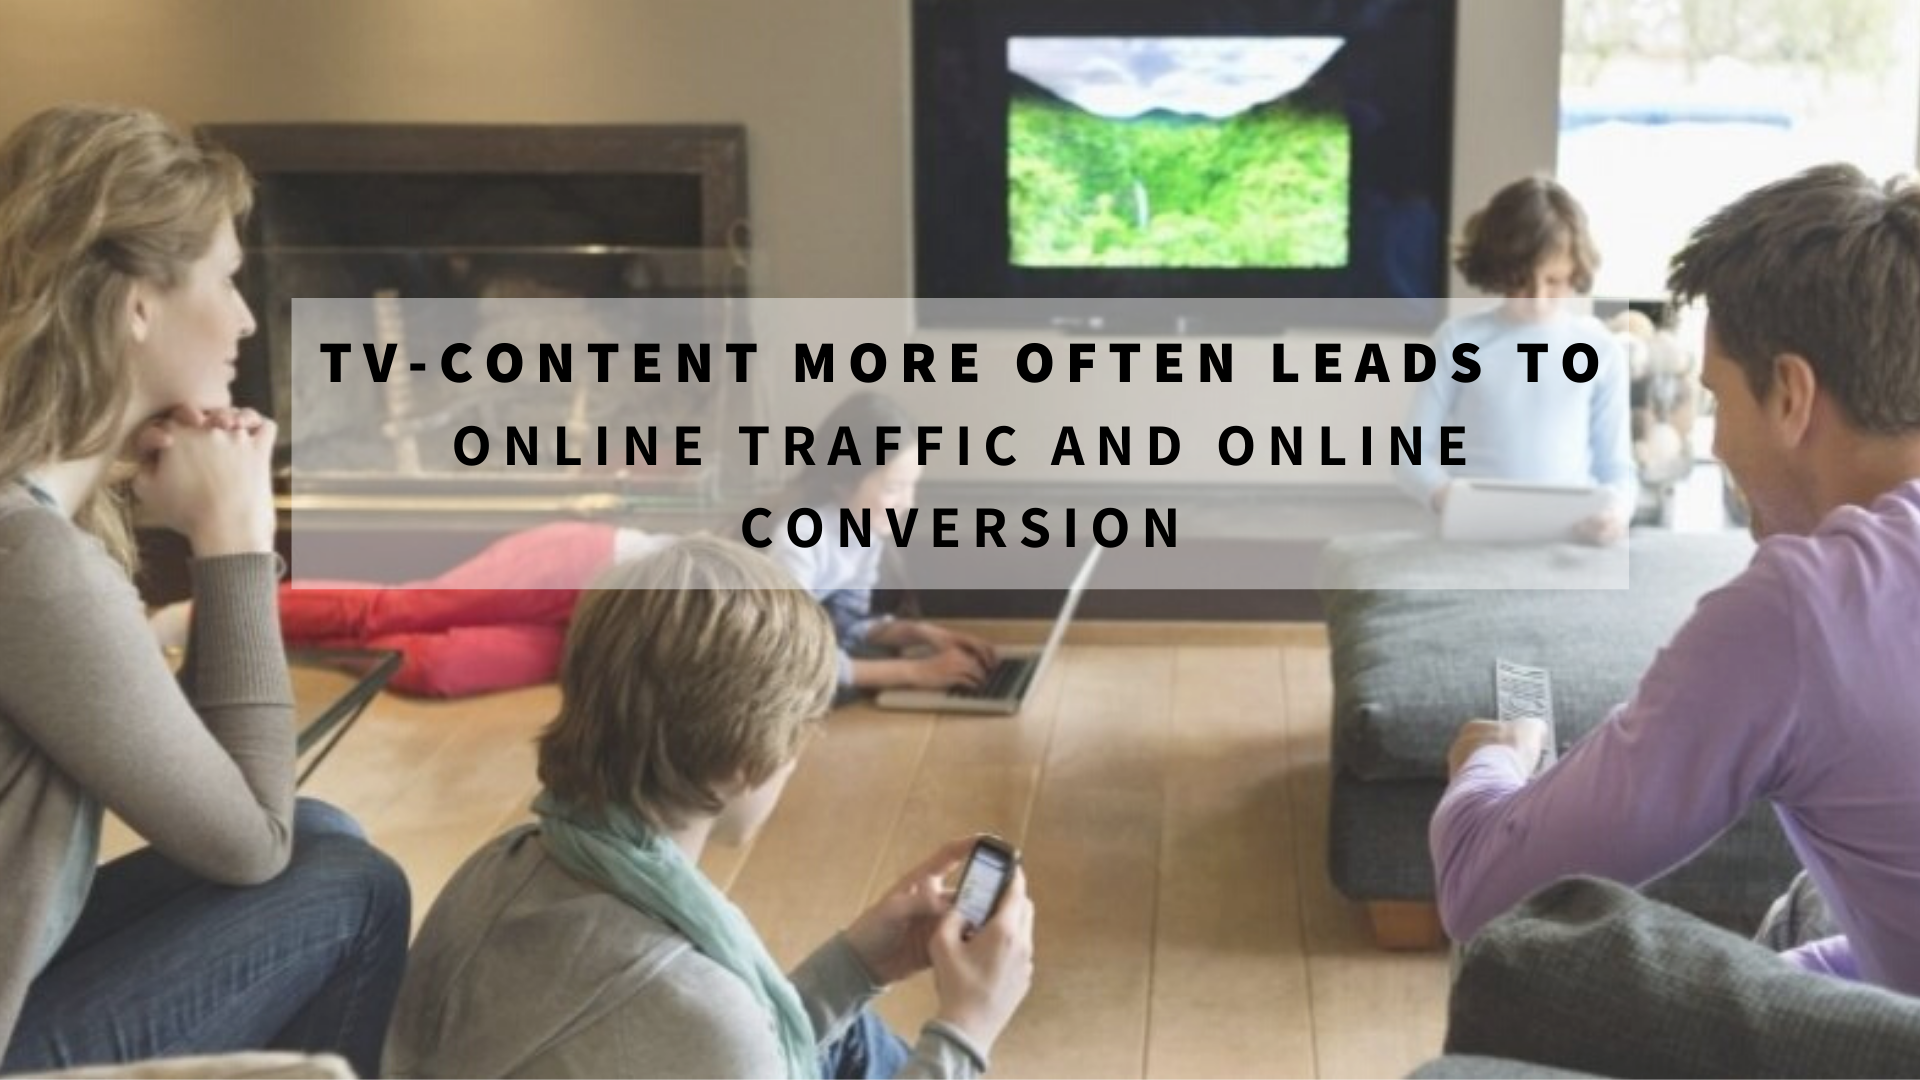 TV content leads to online conversion